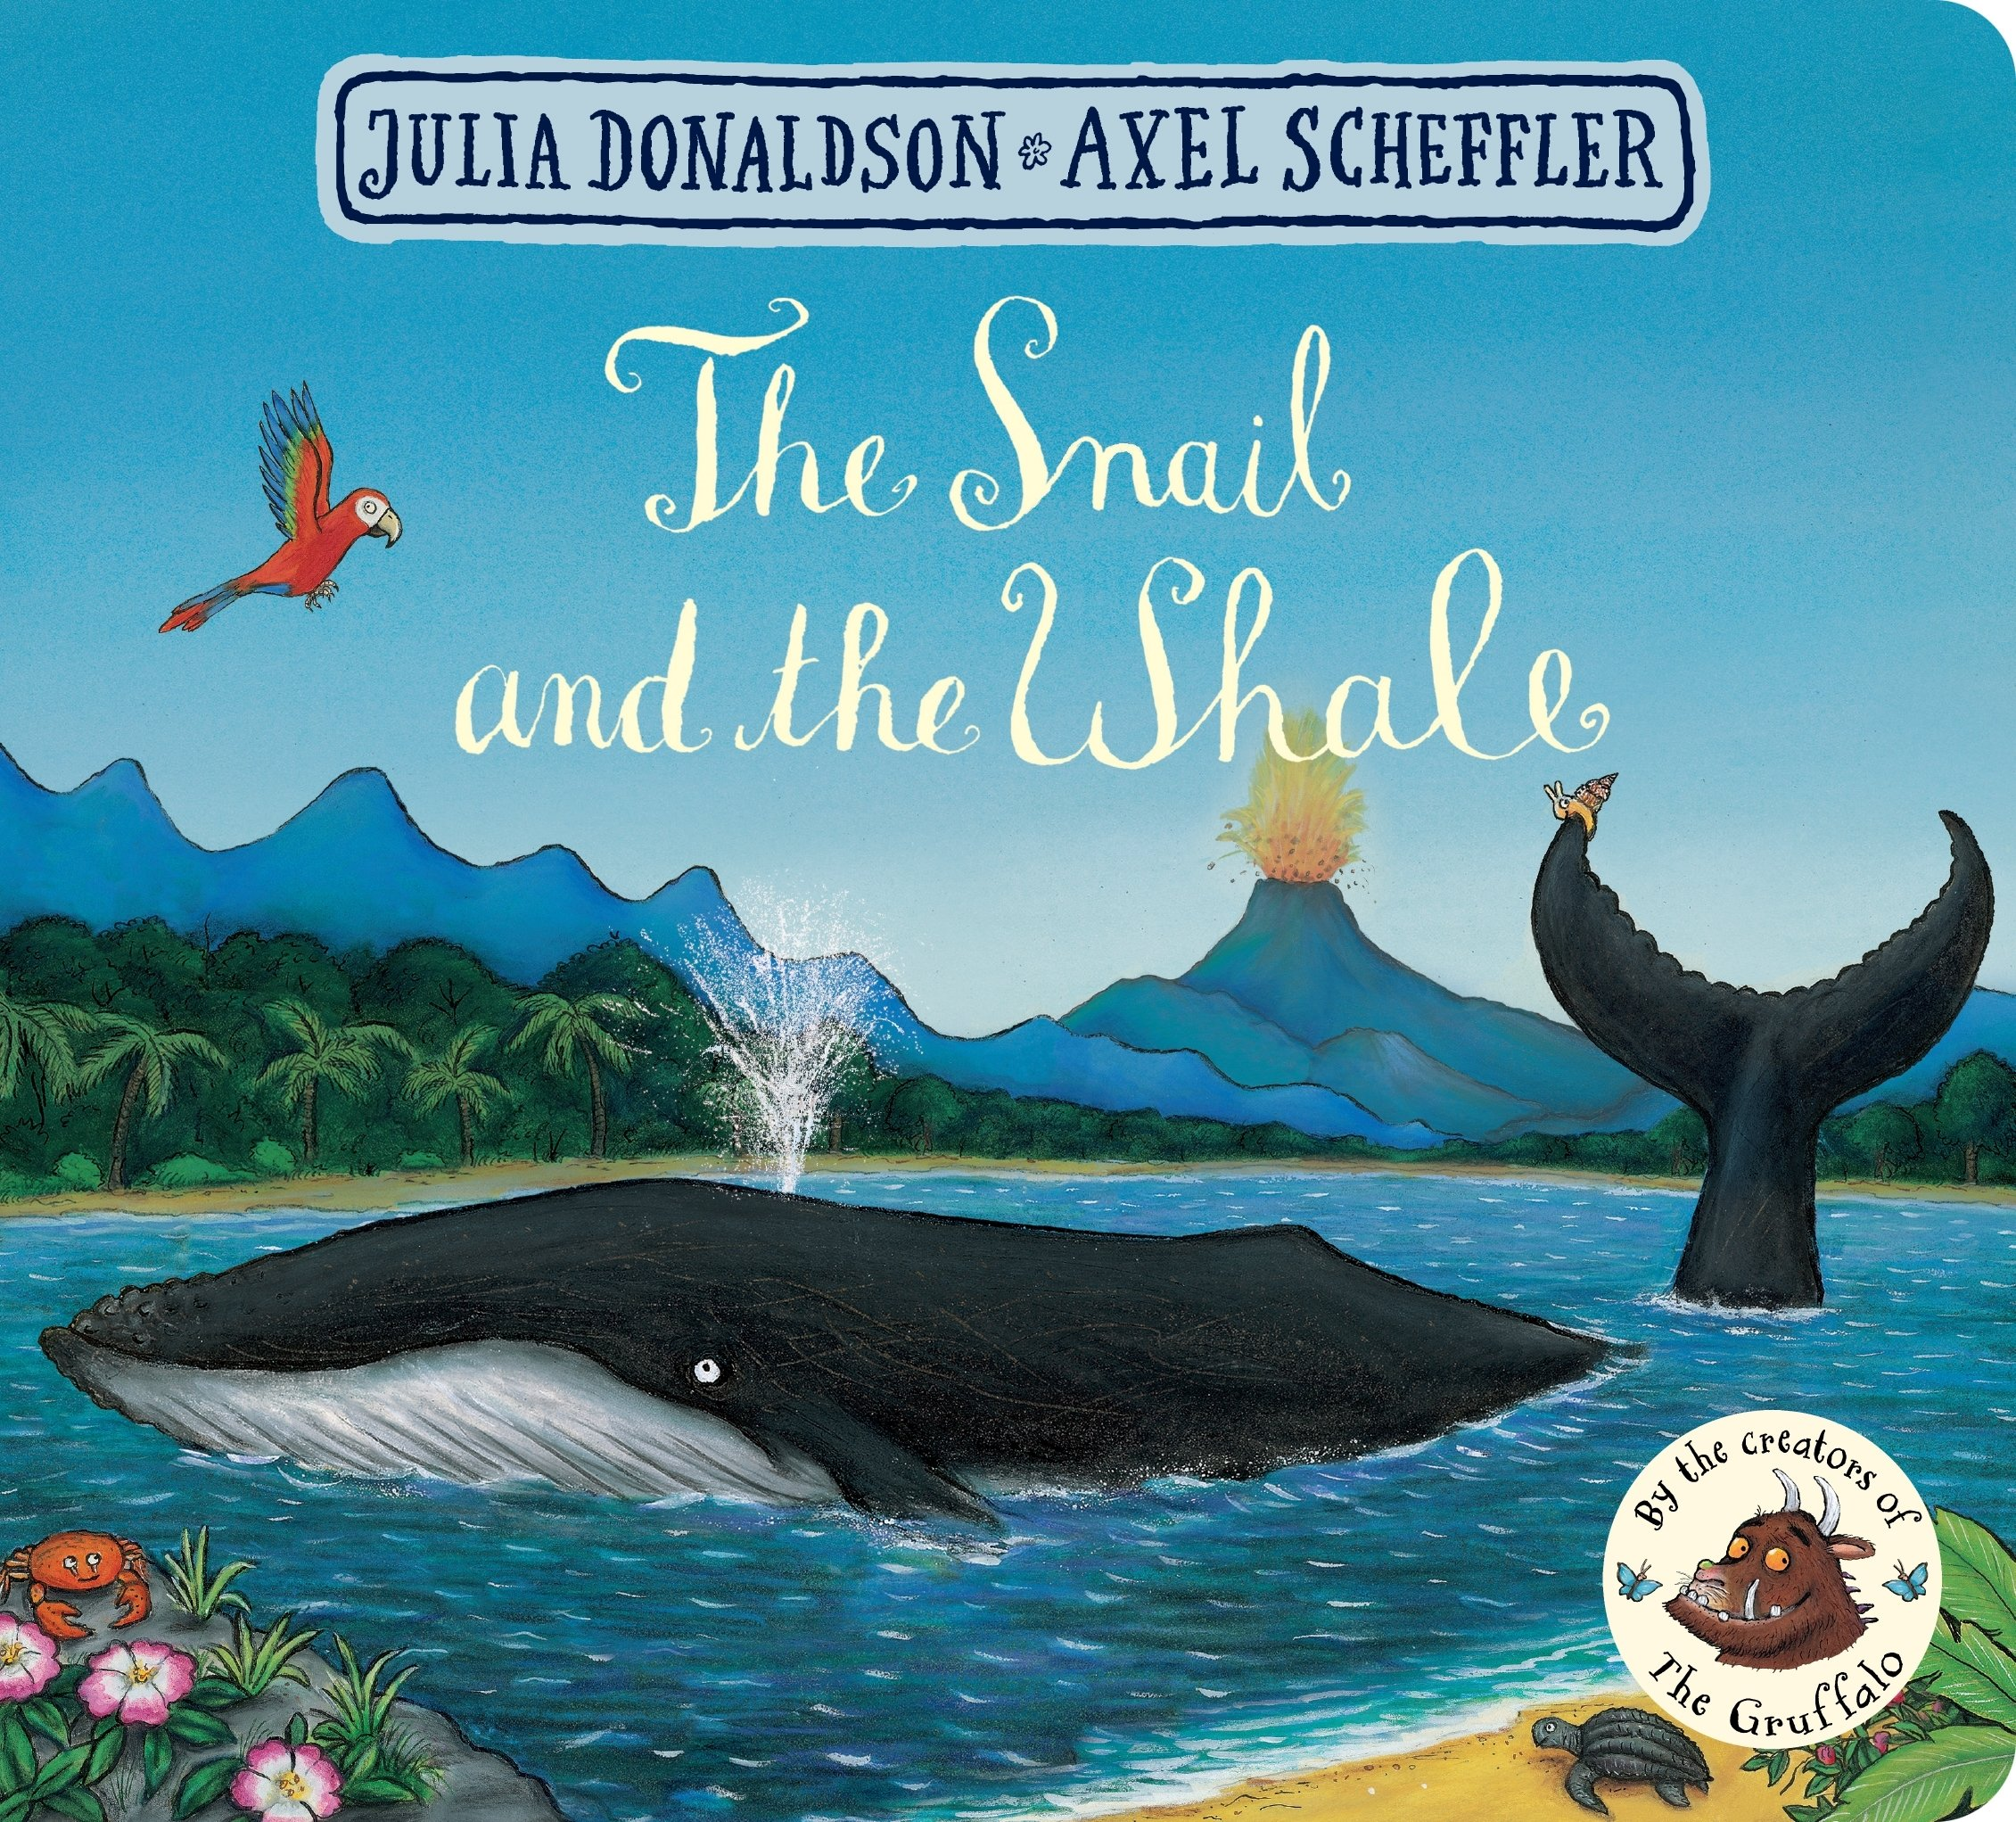 Front cover of The Snail and the Whale showing a whale breaching the waves and spurting water.